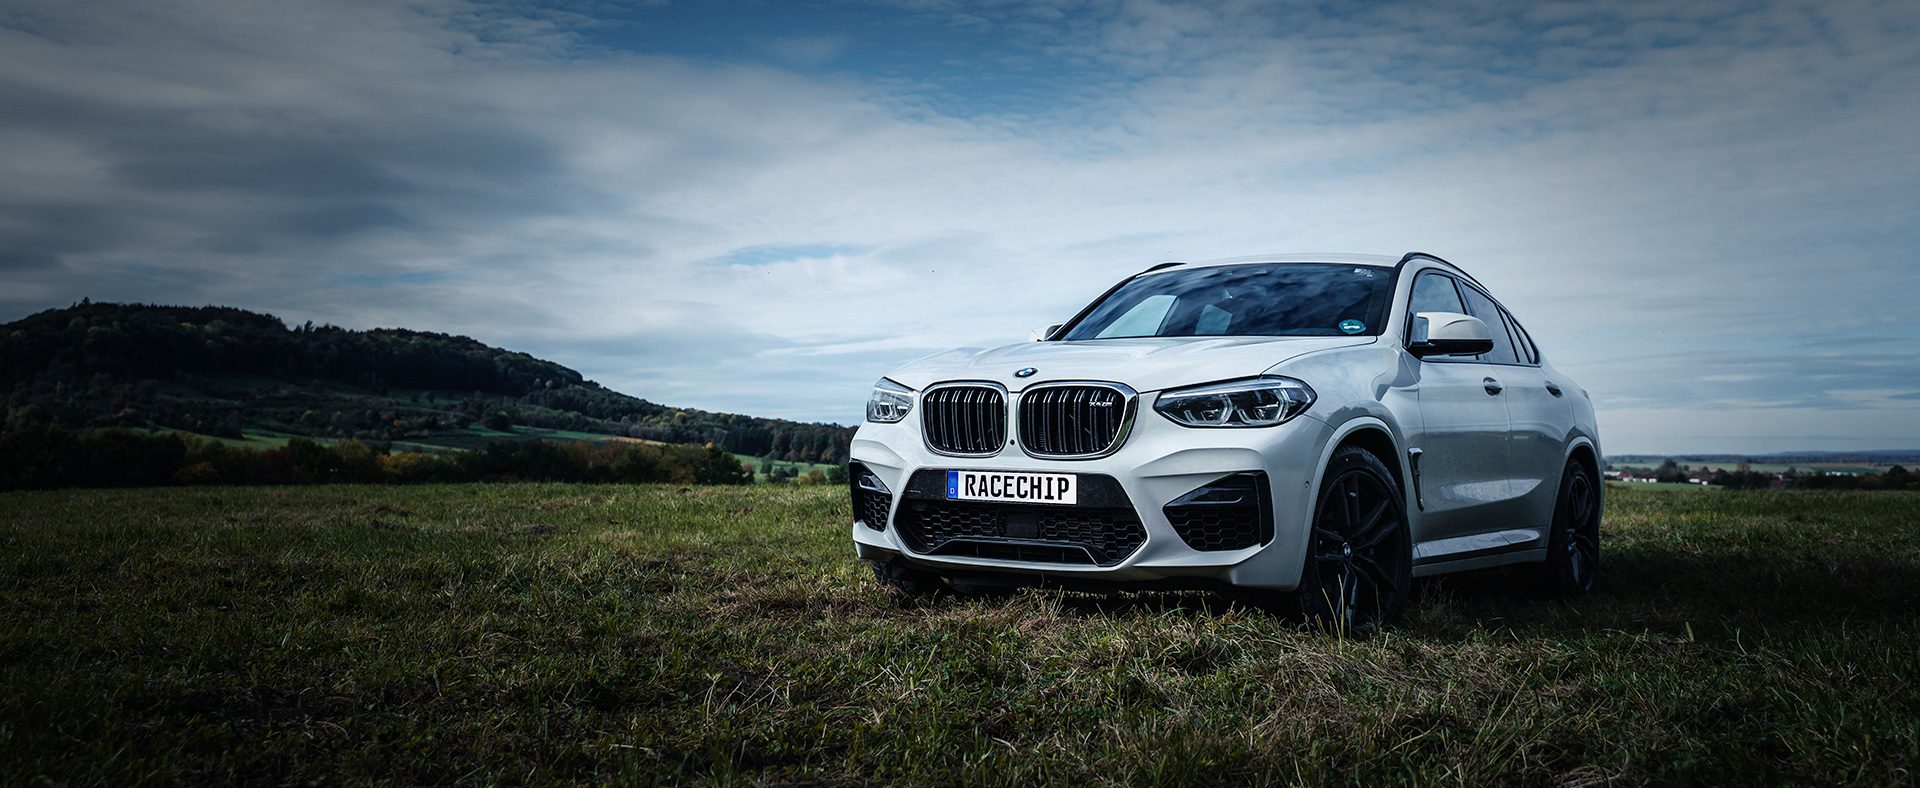 BMW M135i vs. M140i – is the M135i a worthy successor?